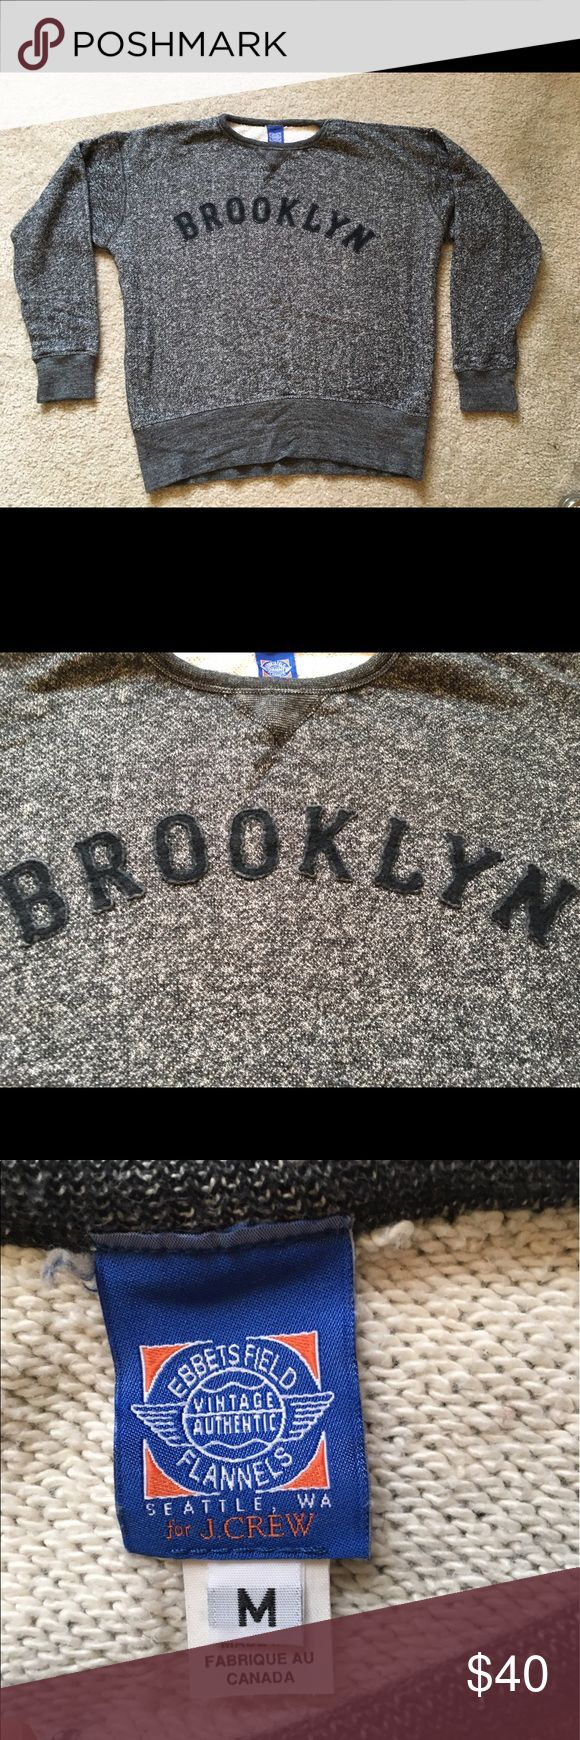 JCrew Ebbets Field Brooklyn Eagles Sweatshirt JCrew Men's item #e6997. Special edition. Ebbets Field Flannels brand (third party brand for JCrew) known for its faithful reproductions of vintage sports paraphernalia--each team logo is carefully researched and authenticated, to ensure historical accuracy. Runs large. Cotton. Machine wash. Made in the US. Extra-soft French terry cotton and wider rib trim at the waist and sleeves. It commemorated the Brooklyn Eagles, a short-lived baseball team…